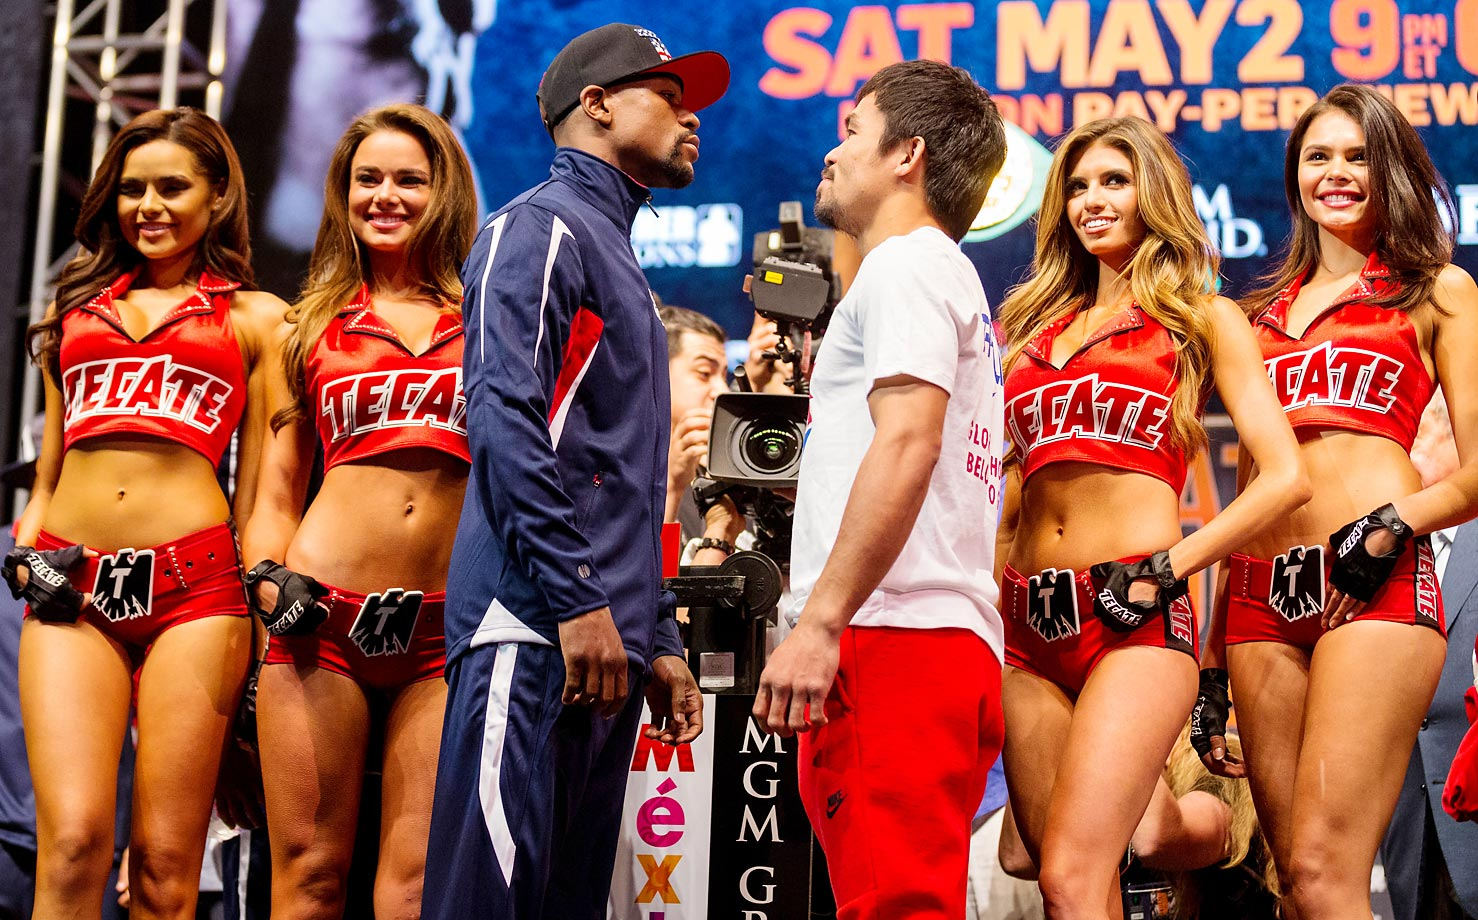 The official weigh-in for Mayweather and Pacquiao.